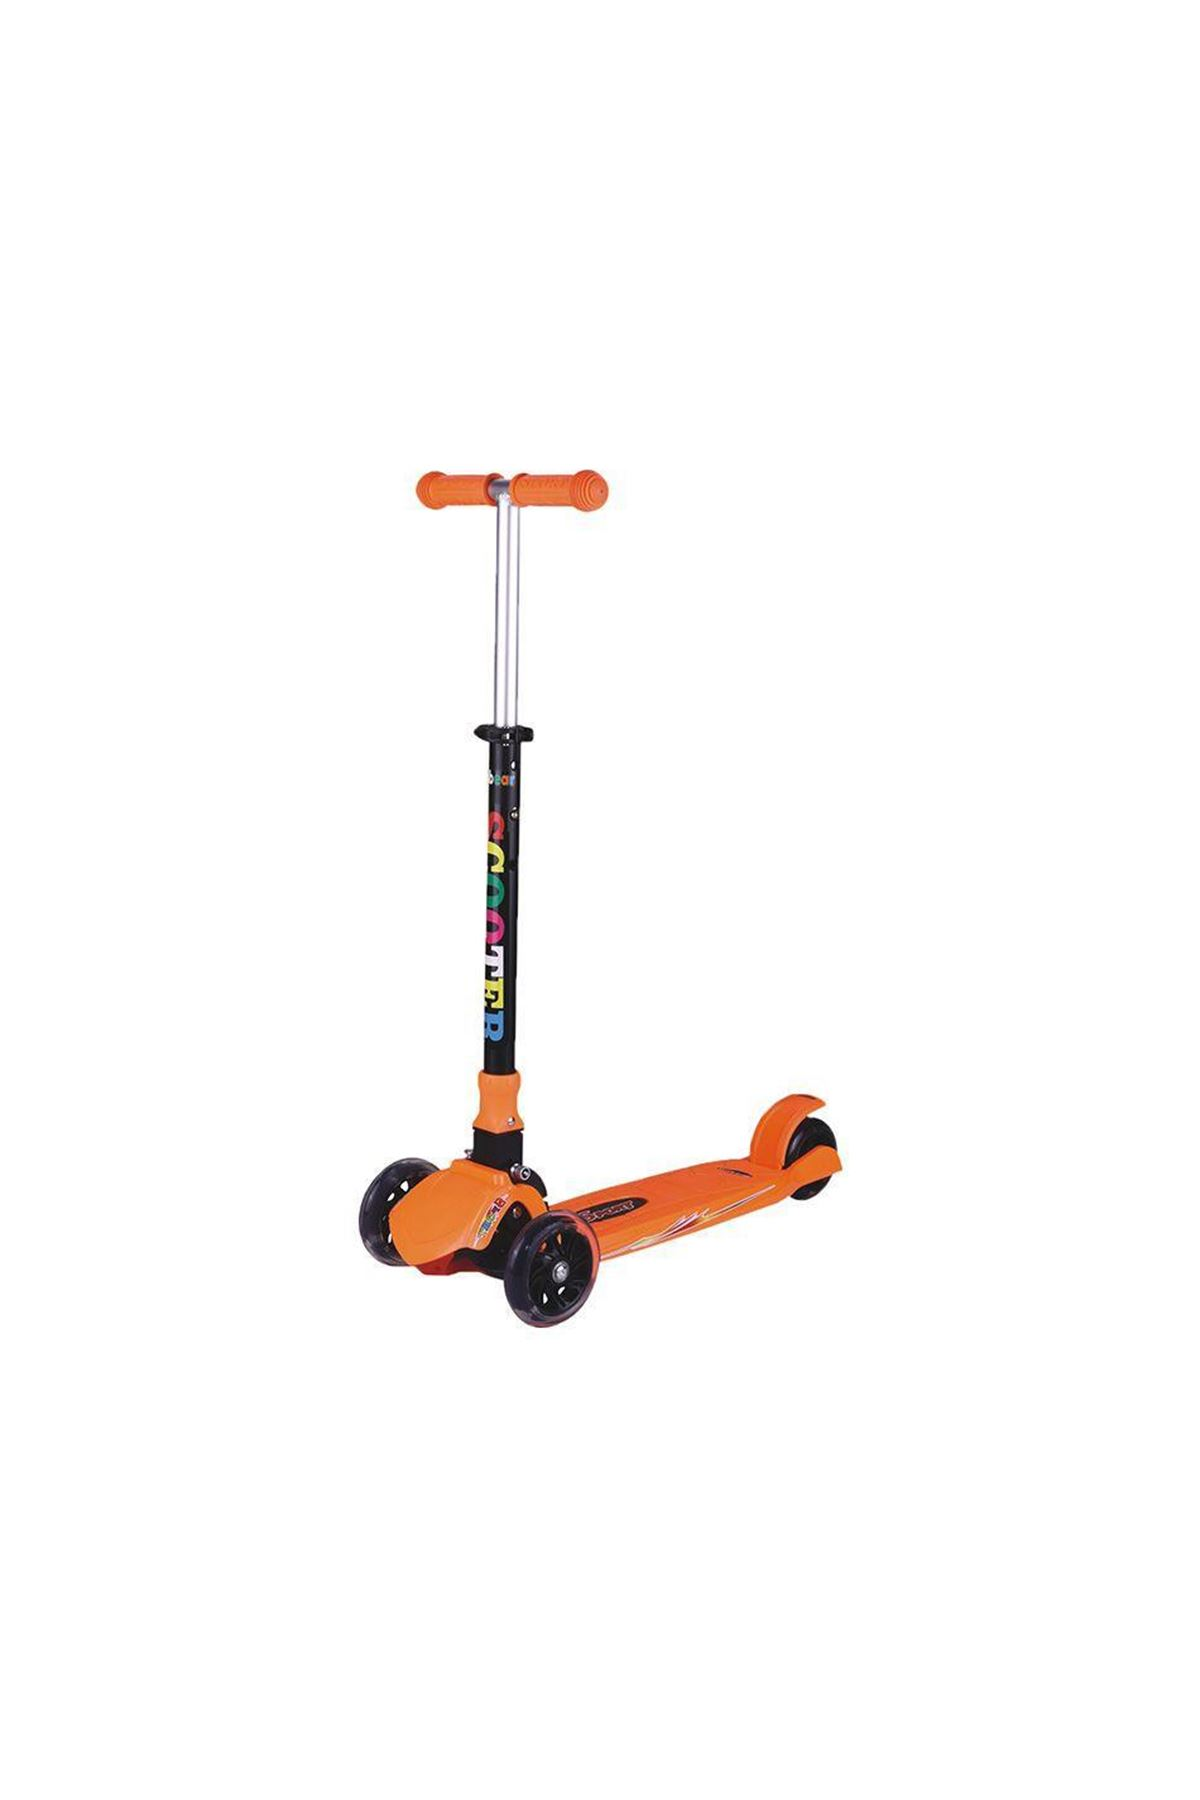 Babyhope JYH01 Power Scooter Turuncu